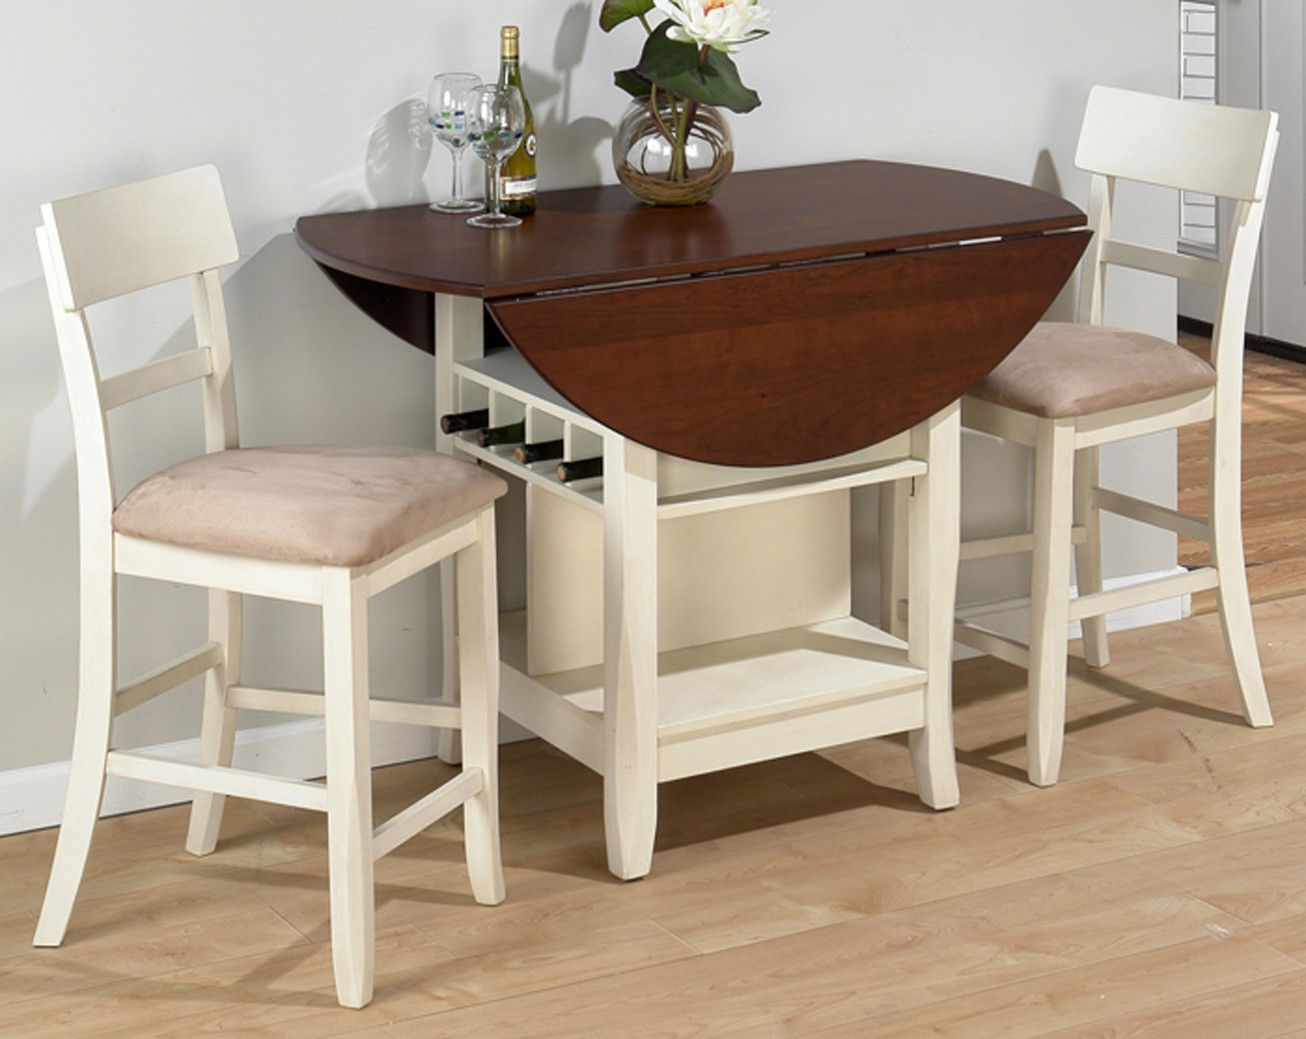 Compact Dining Space Arrangement With Drop Leaf Table For